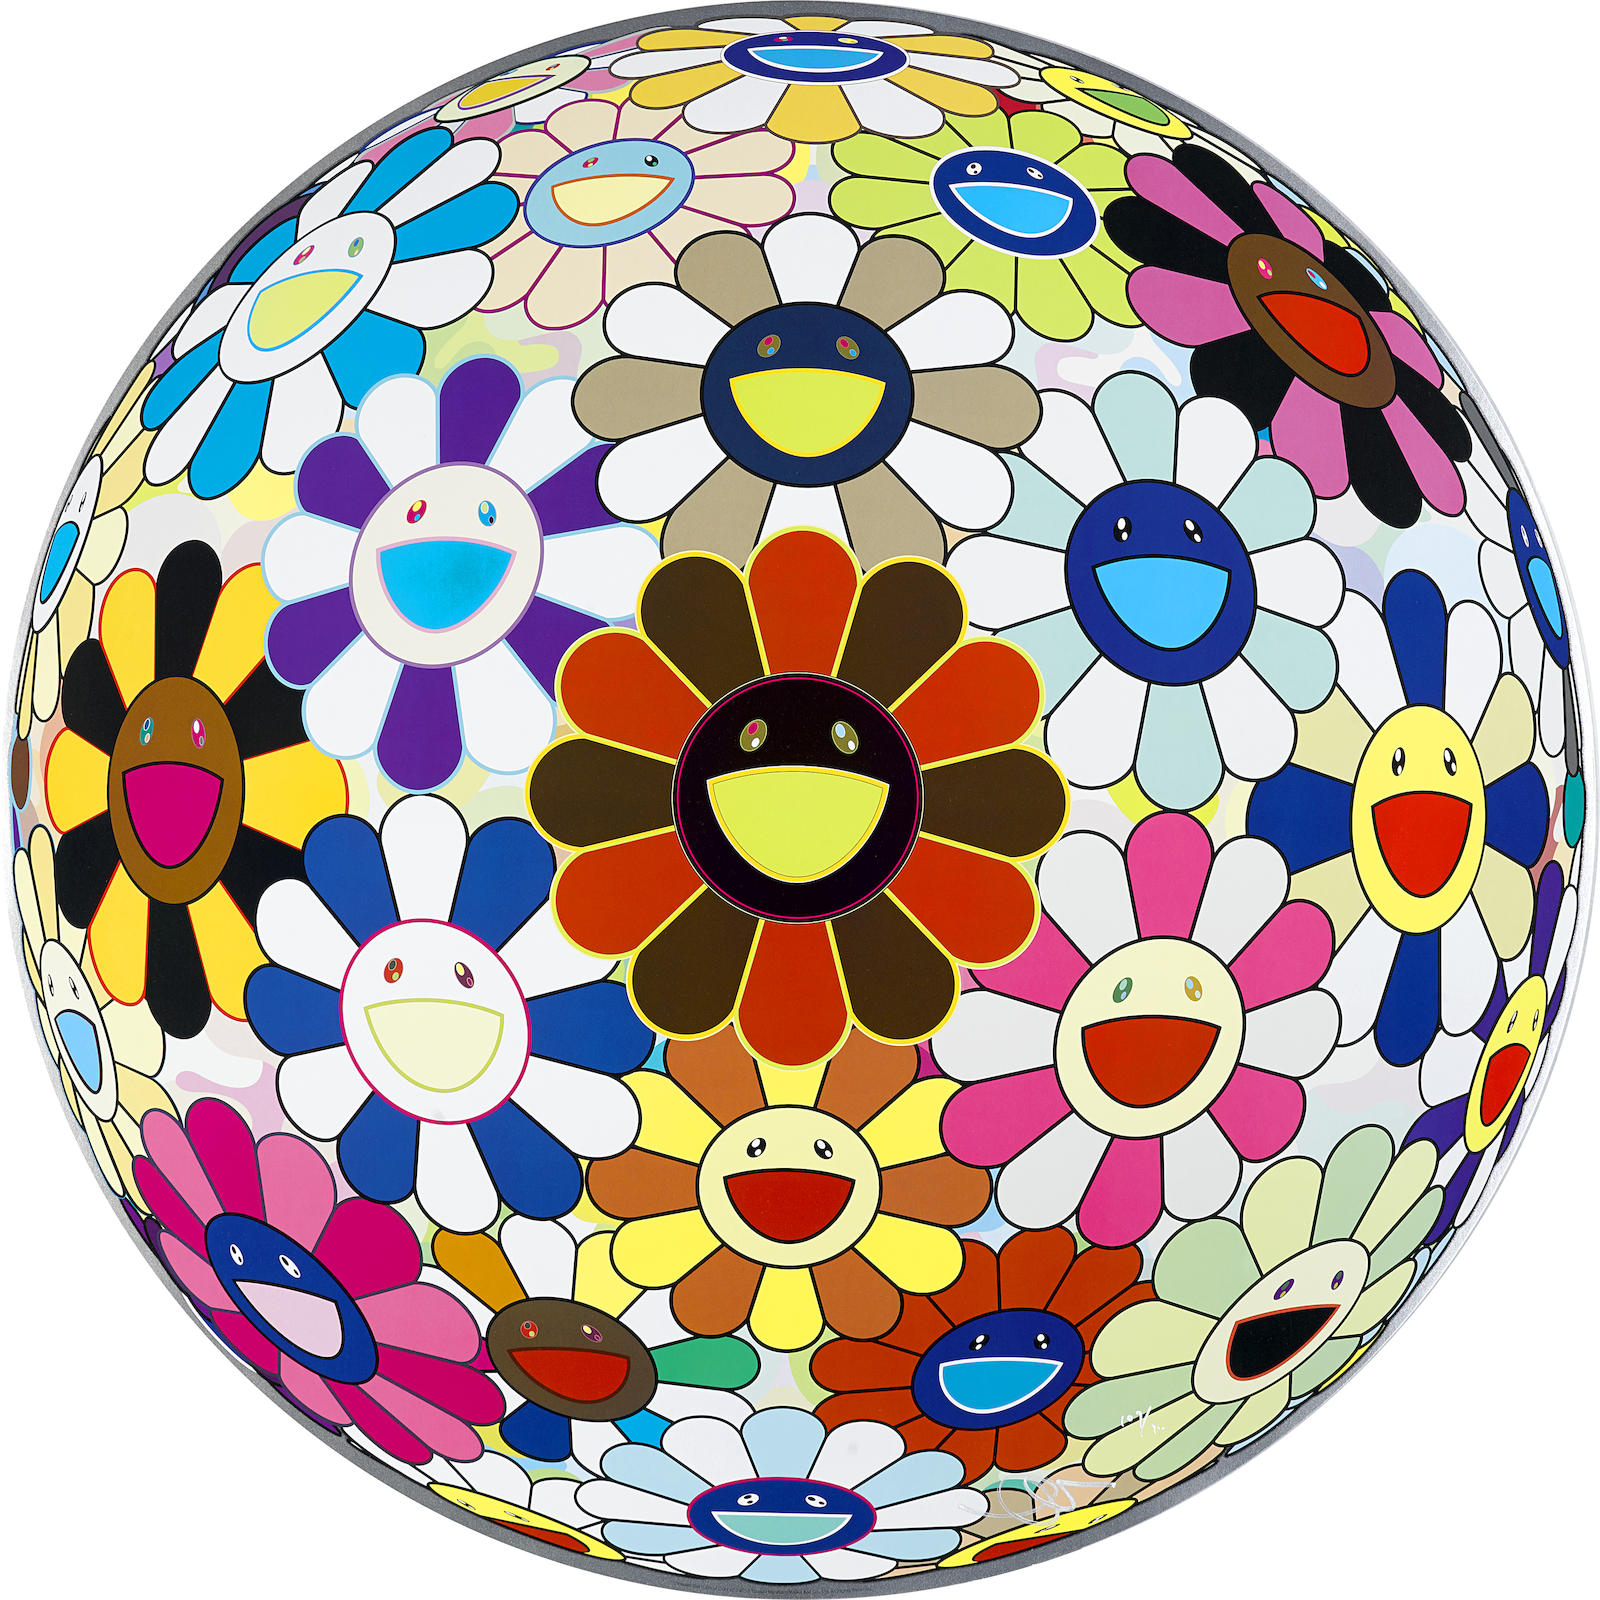 Takashi Murakami-Flower Ball (Lot of Colors)-2013